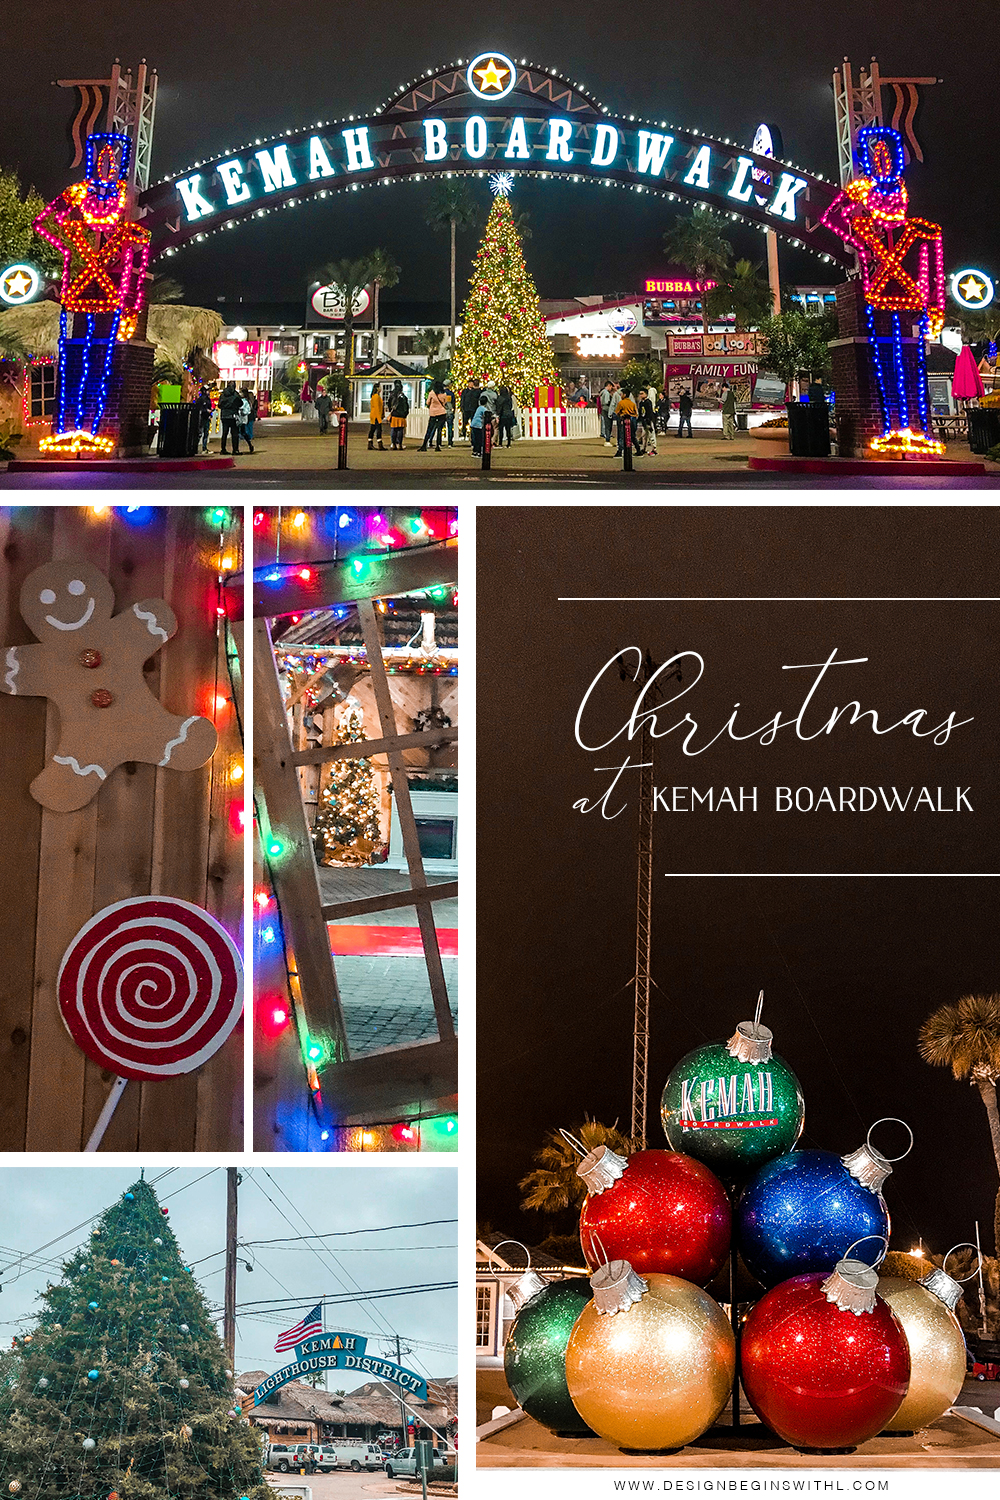 The Ultimate Guide to the Holidays at the Kemah Boardwalk